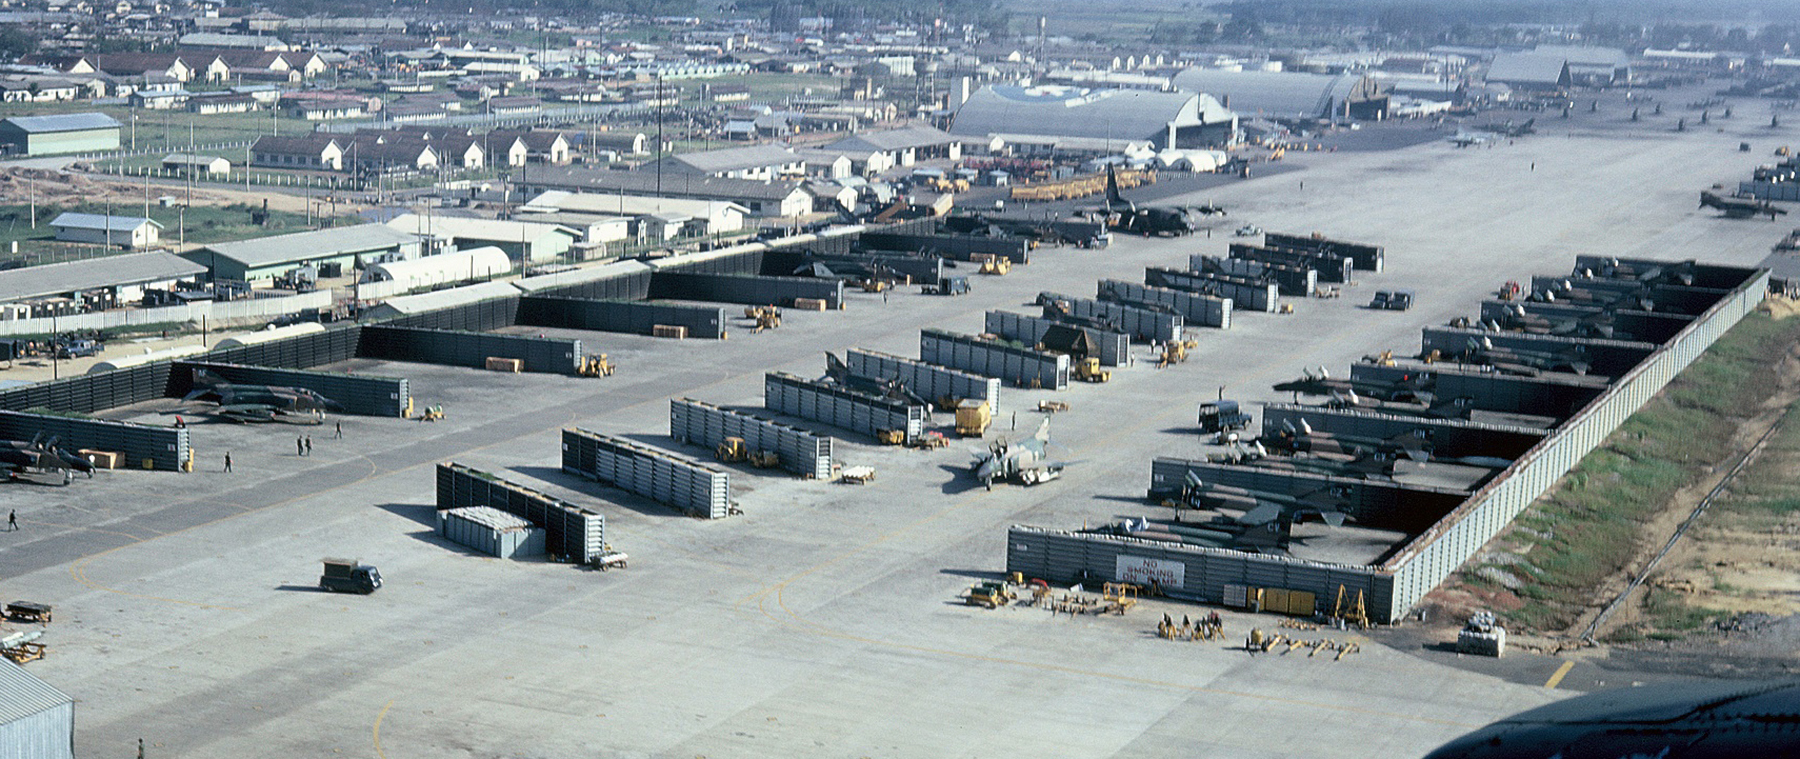 Da_Nang_Air_Base_during_the_Vietnam_War